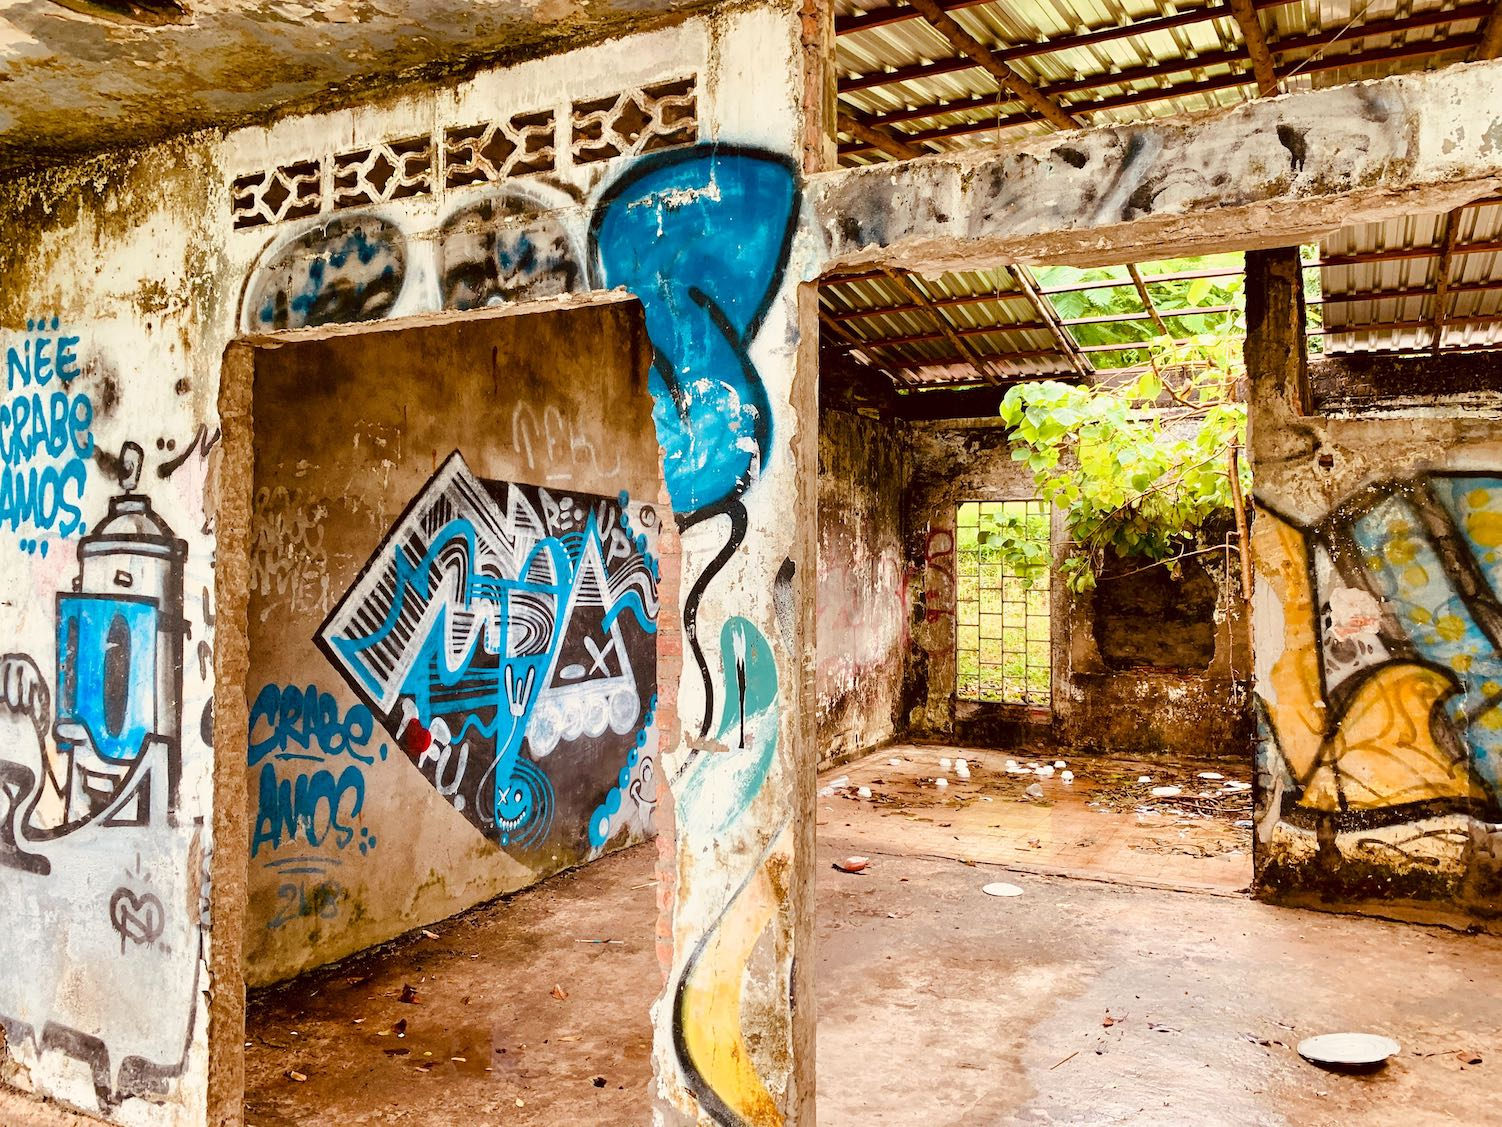 Graffiti in an Abandoned villa in Kep